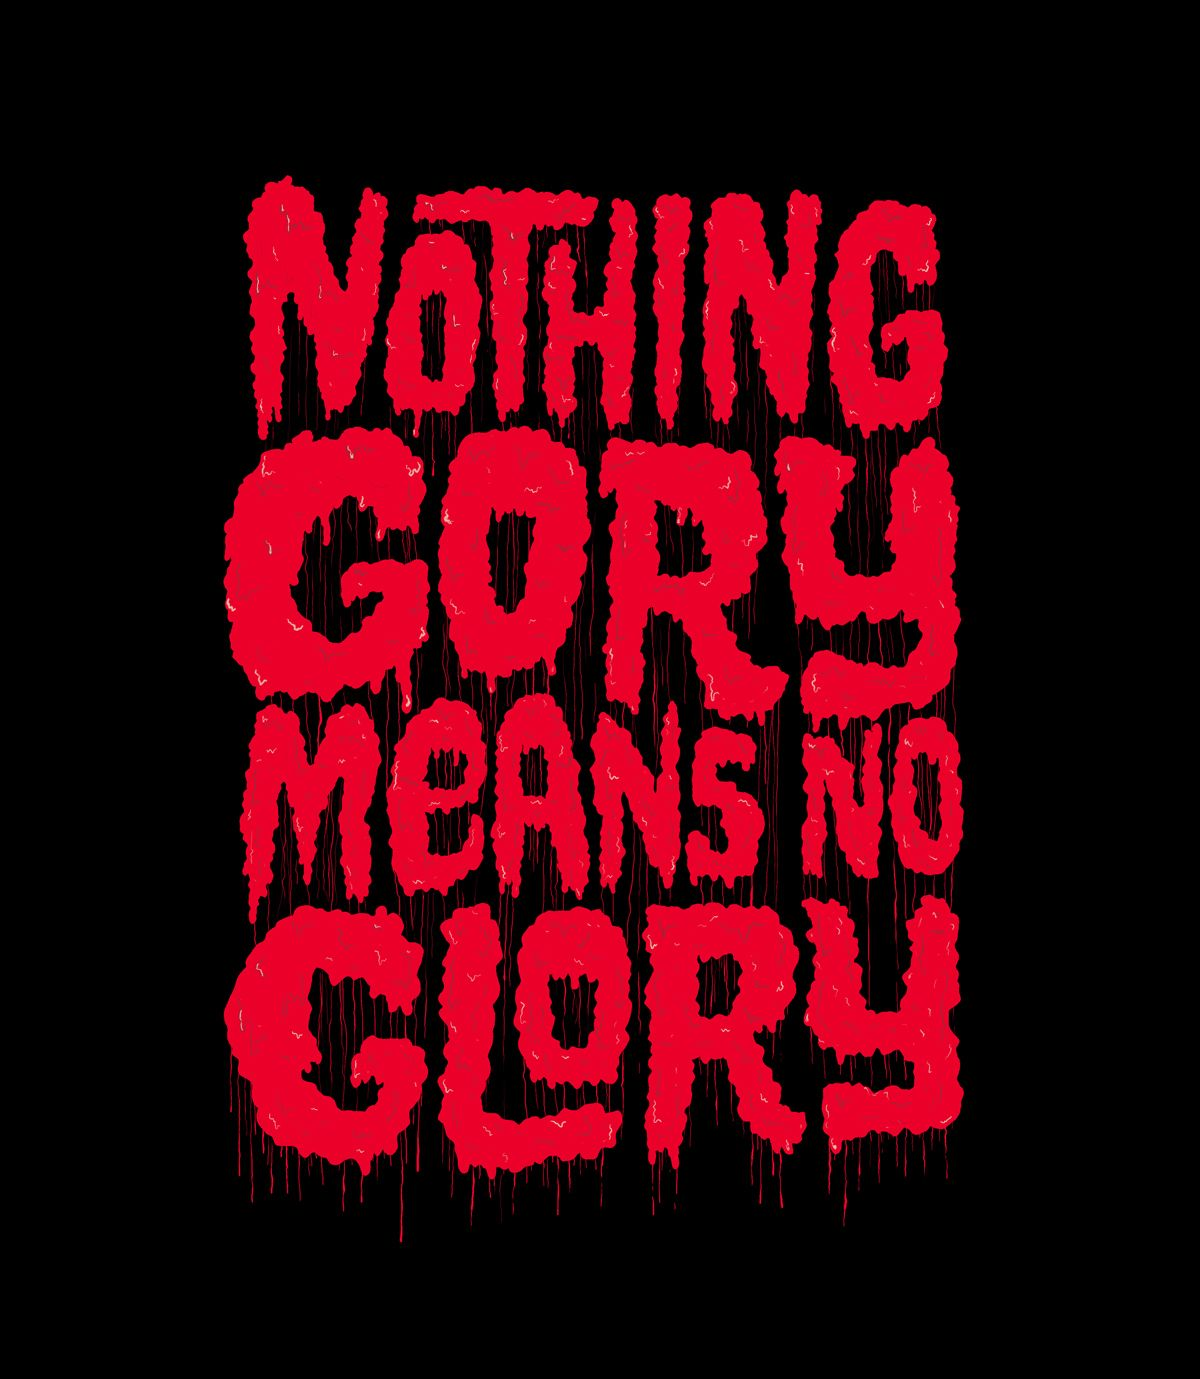 Nothing Gory Means No Glory